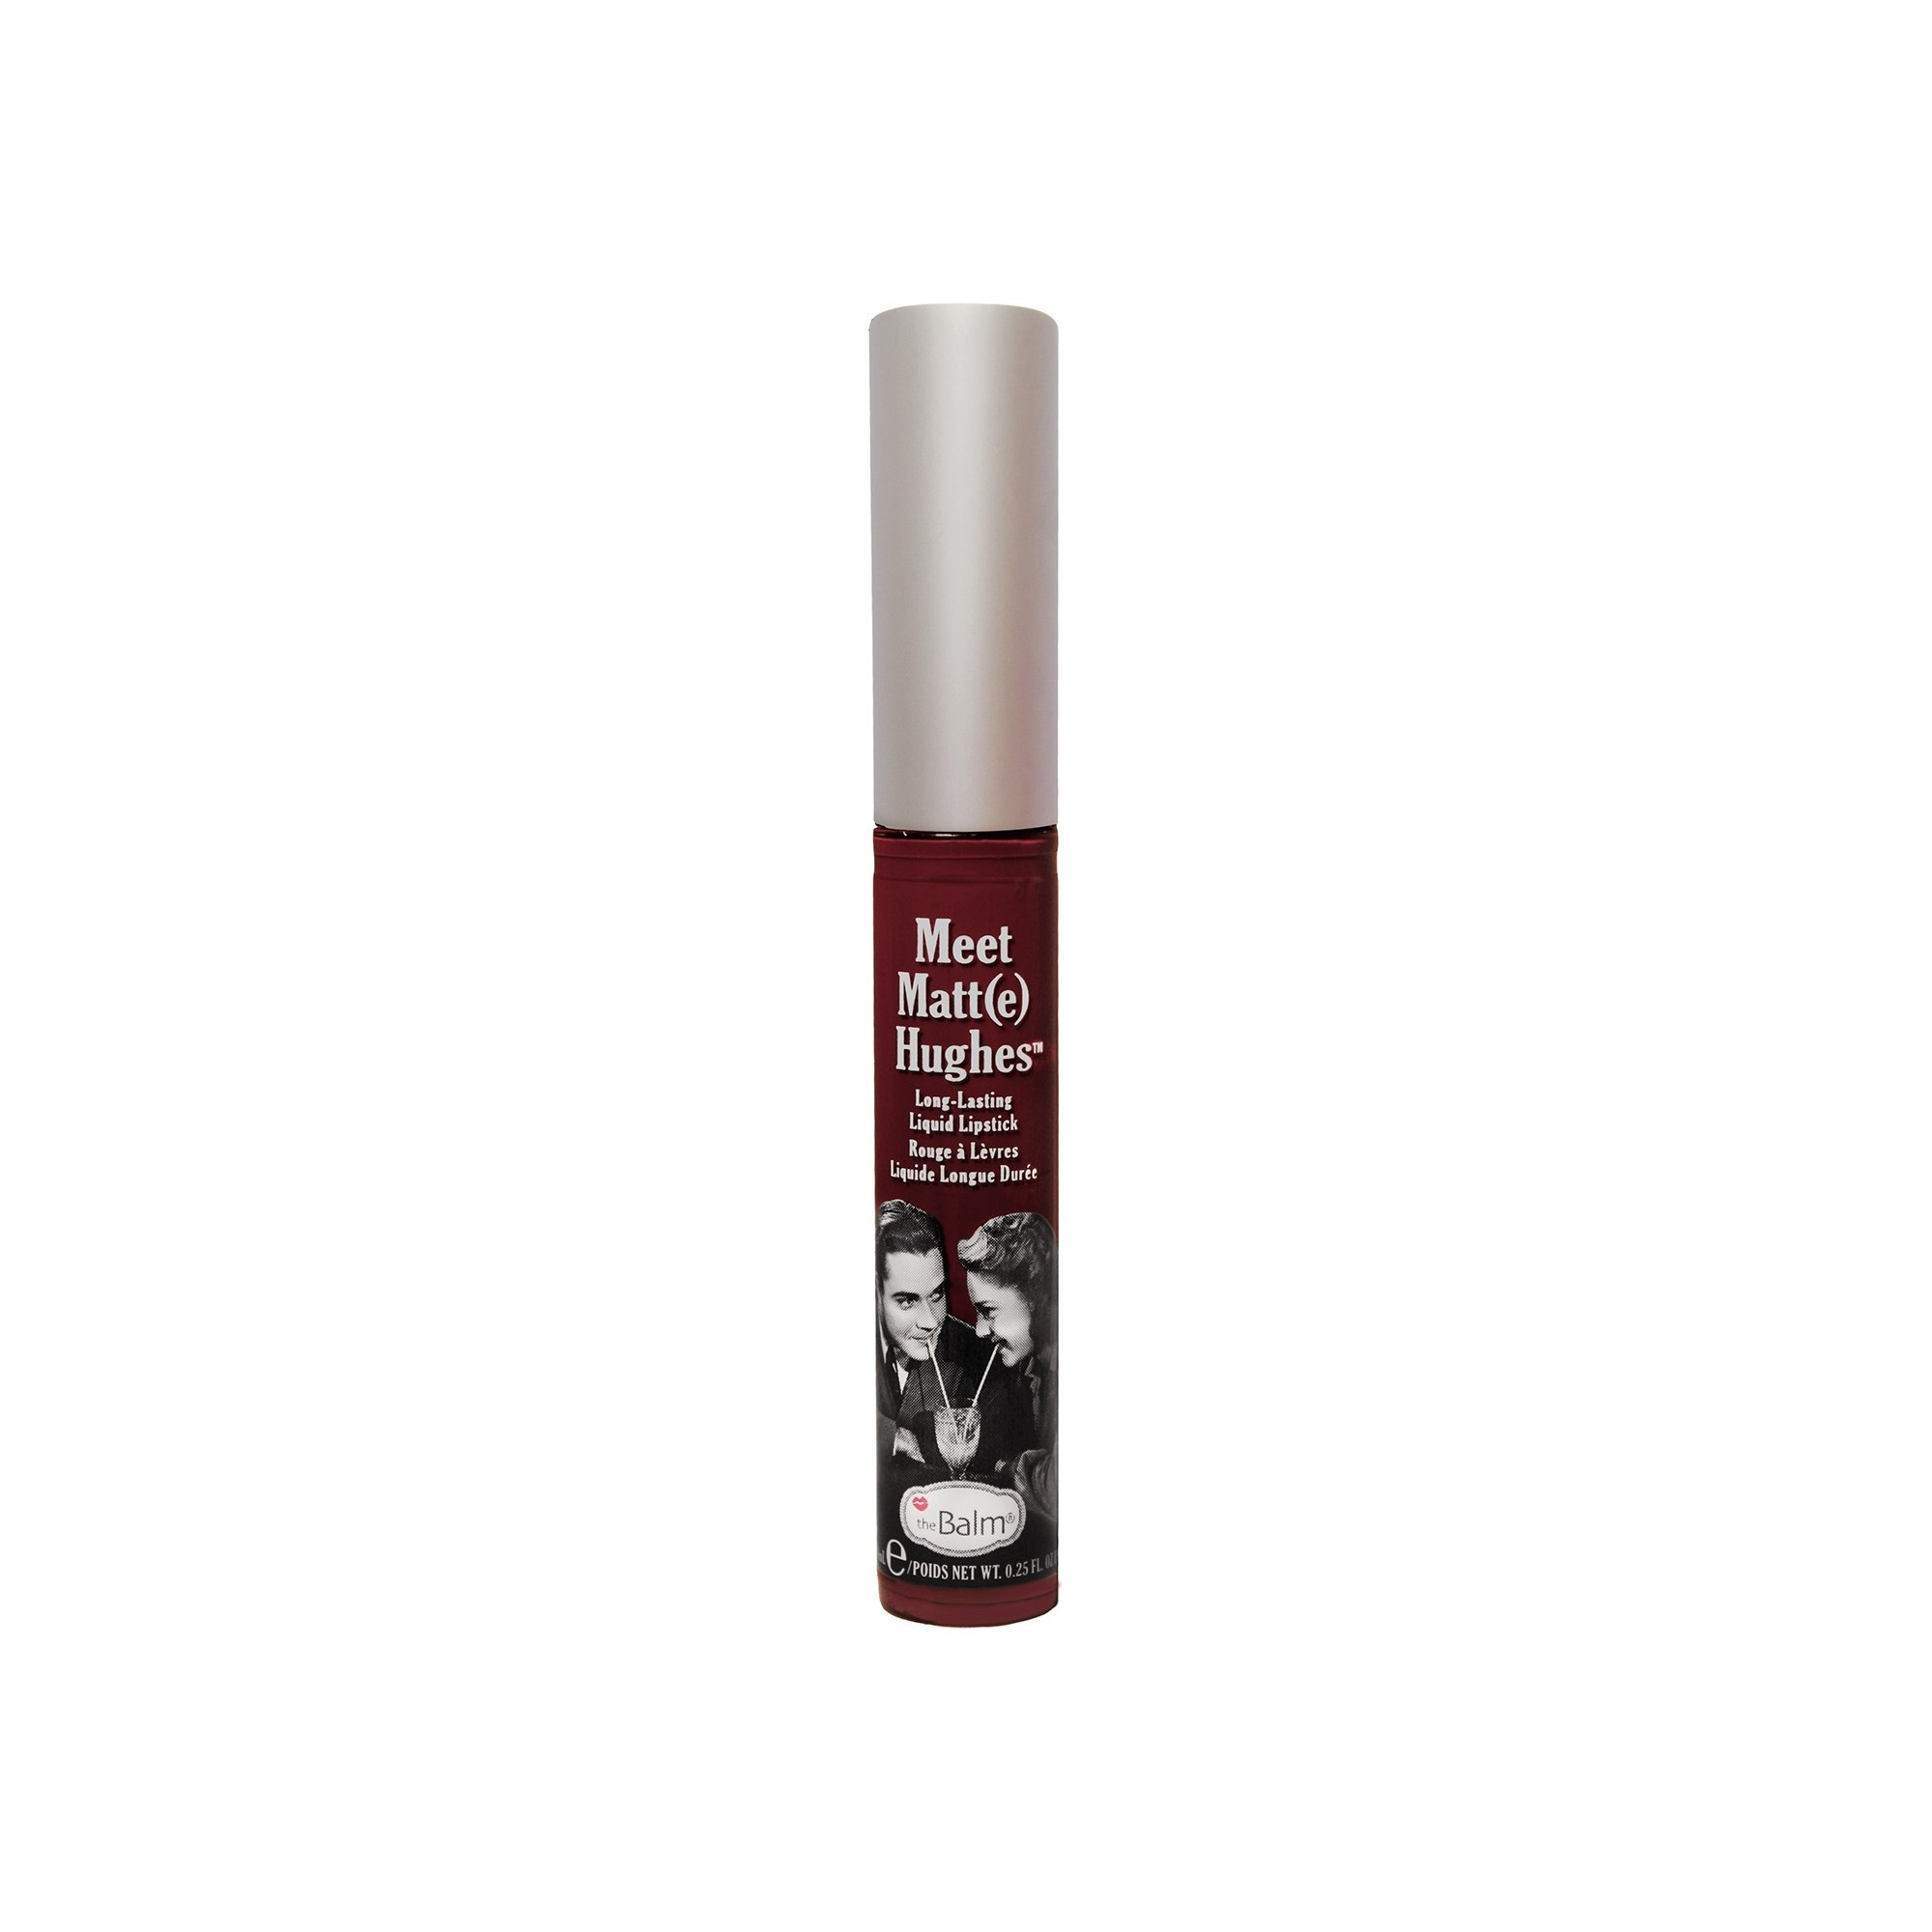 The Balm Meet Matt(e) Hughes Long-Lasting Liquid Lipstick Adoring